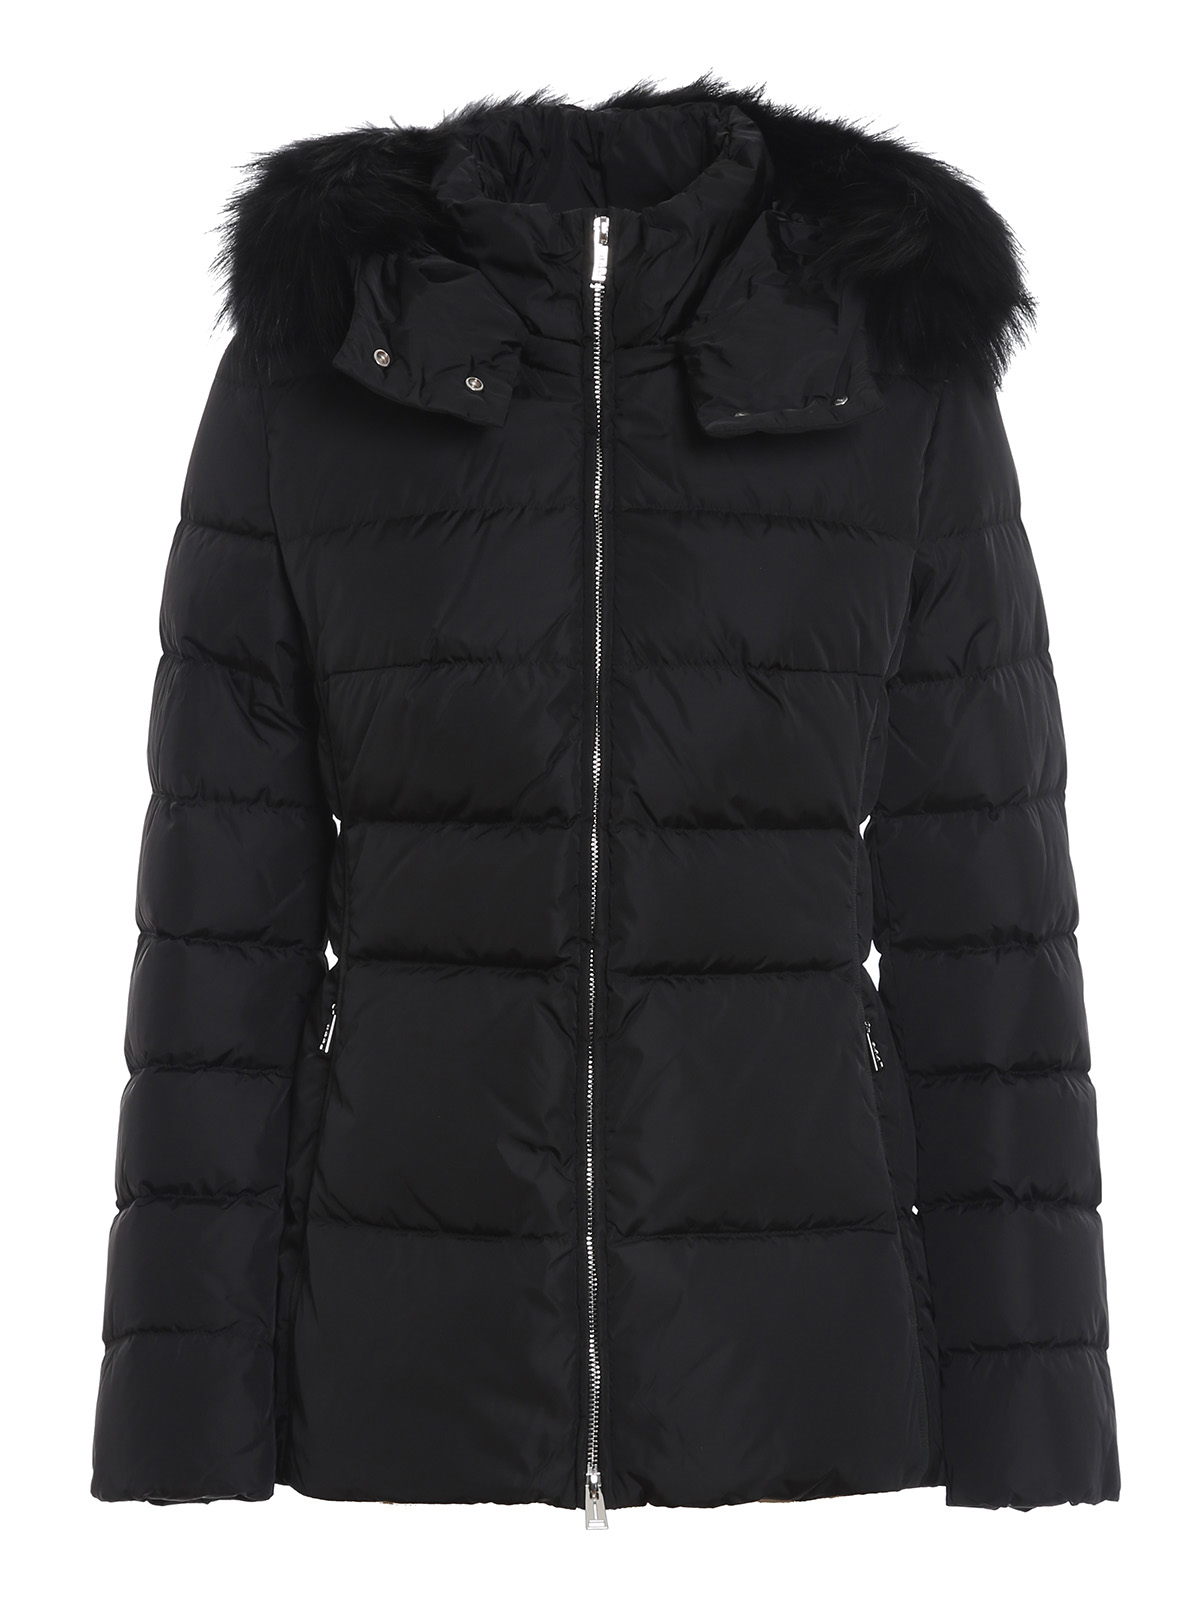 Add Downs BLACK QUILTED SHORT PUFFER JACKET